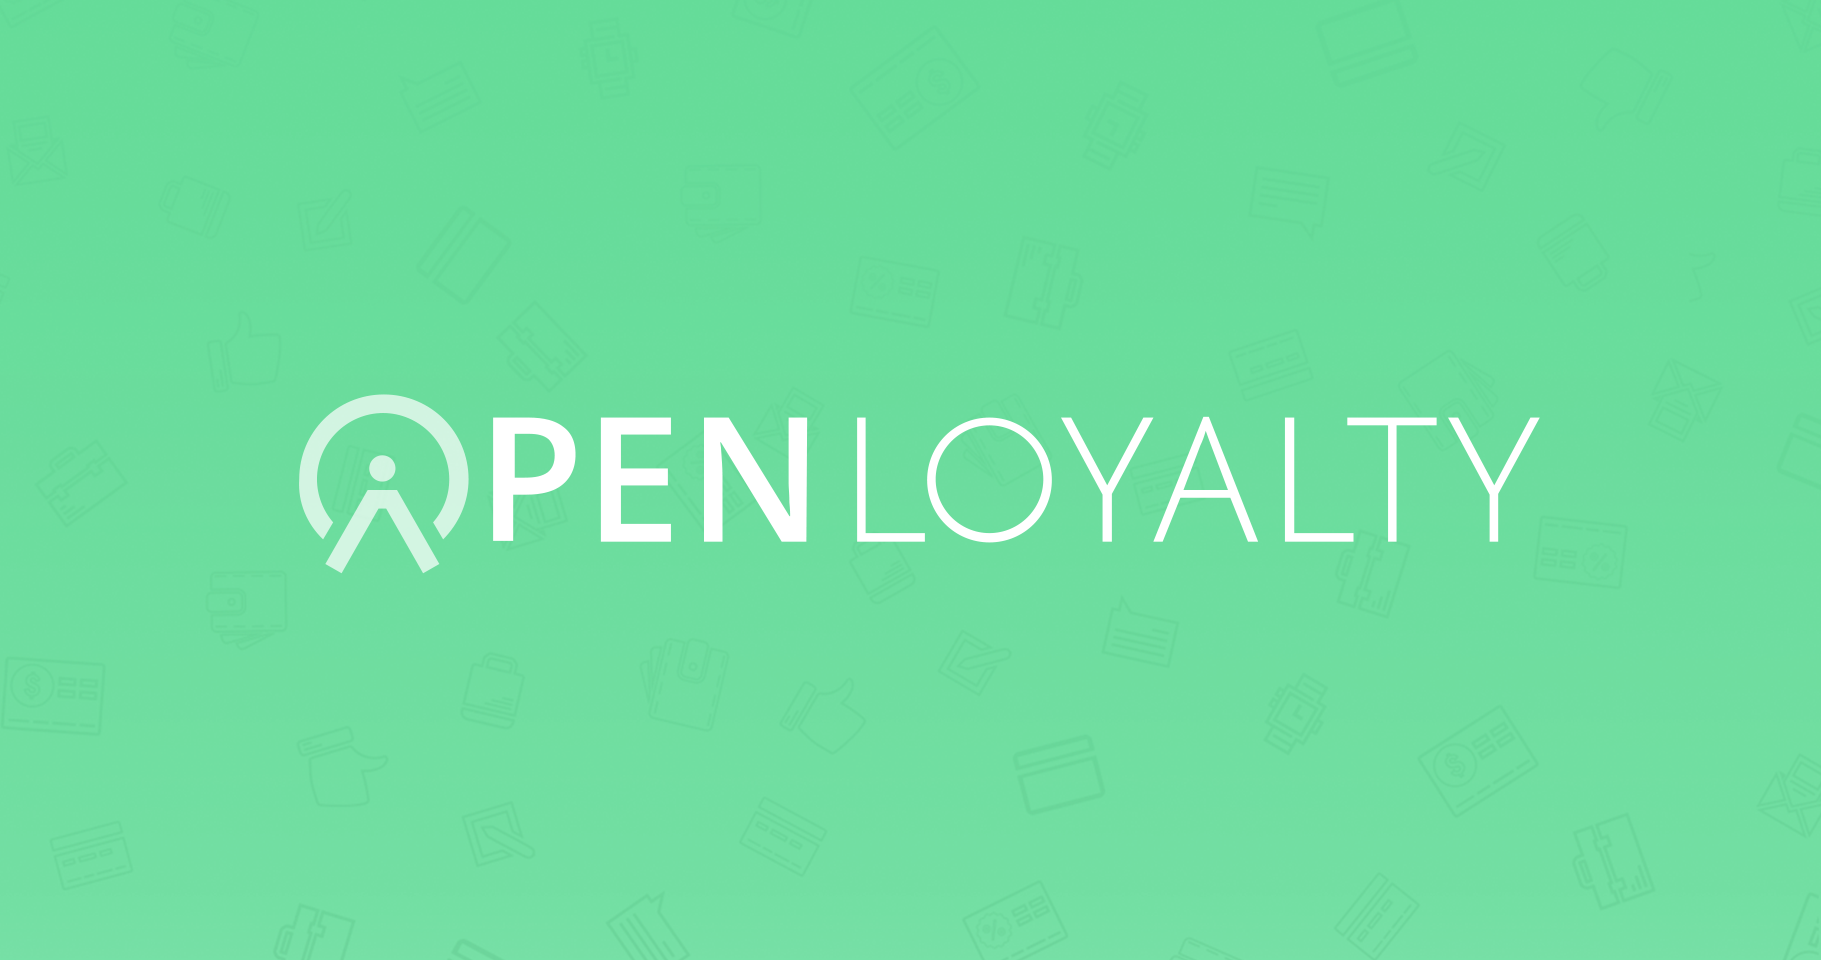 Open Loyalty